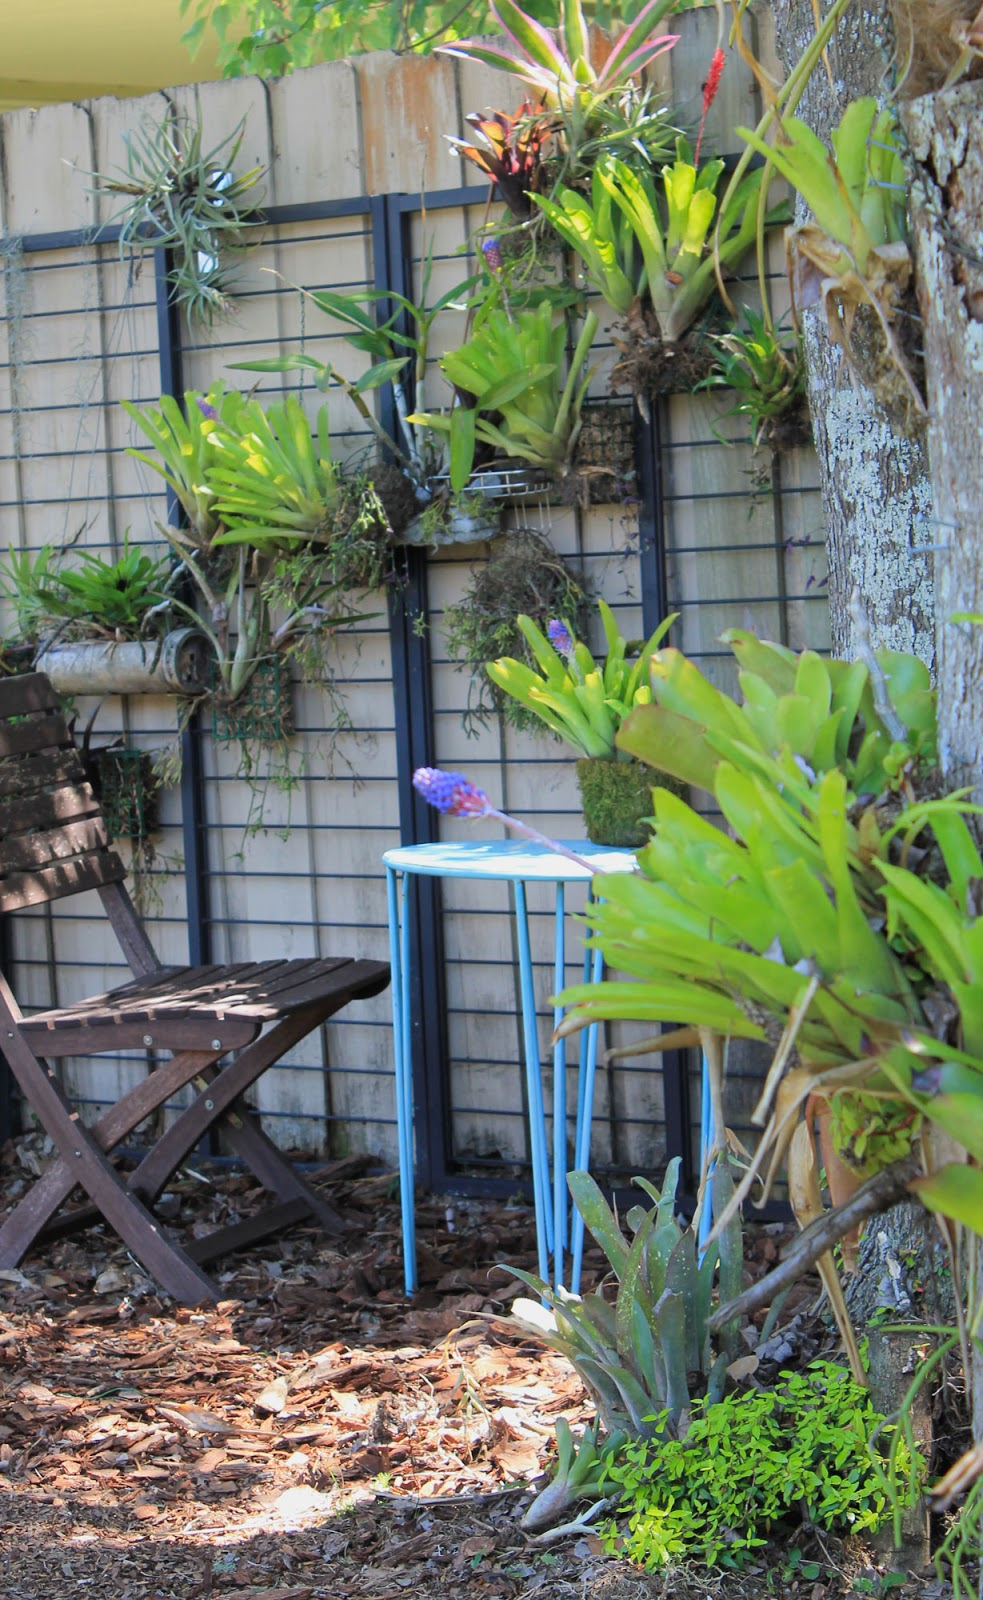 CREATE A VERTICAL GARDEN FROM CHEAP BIRDFEEDER BASKETS